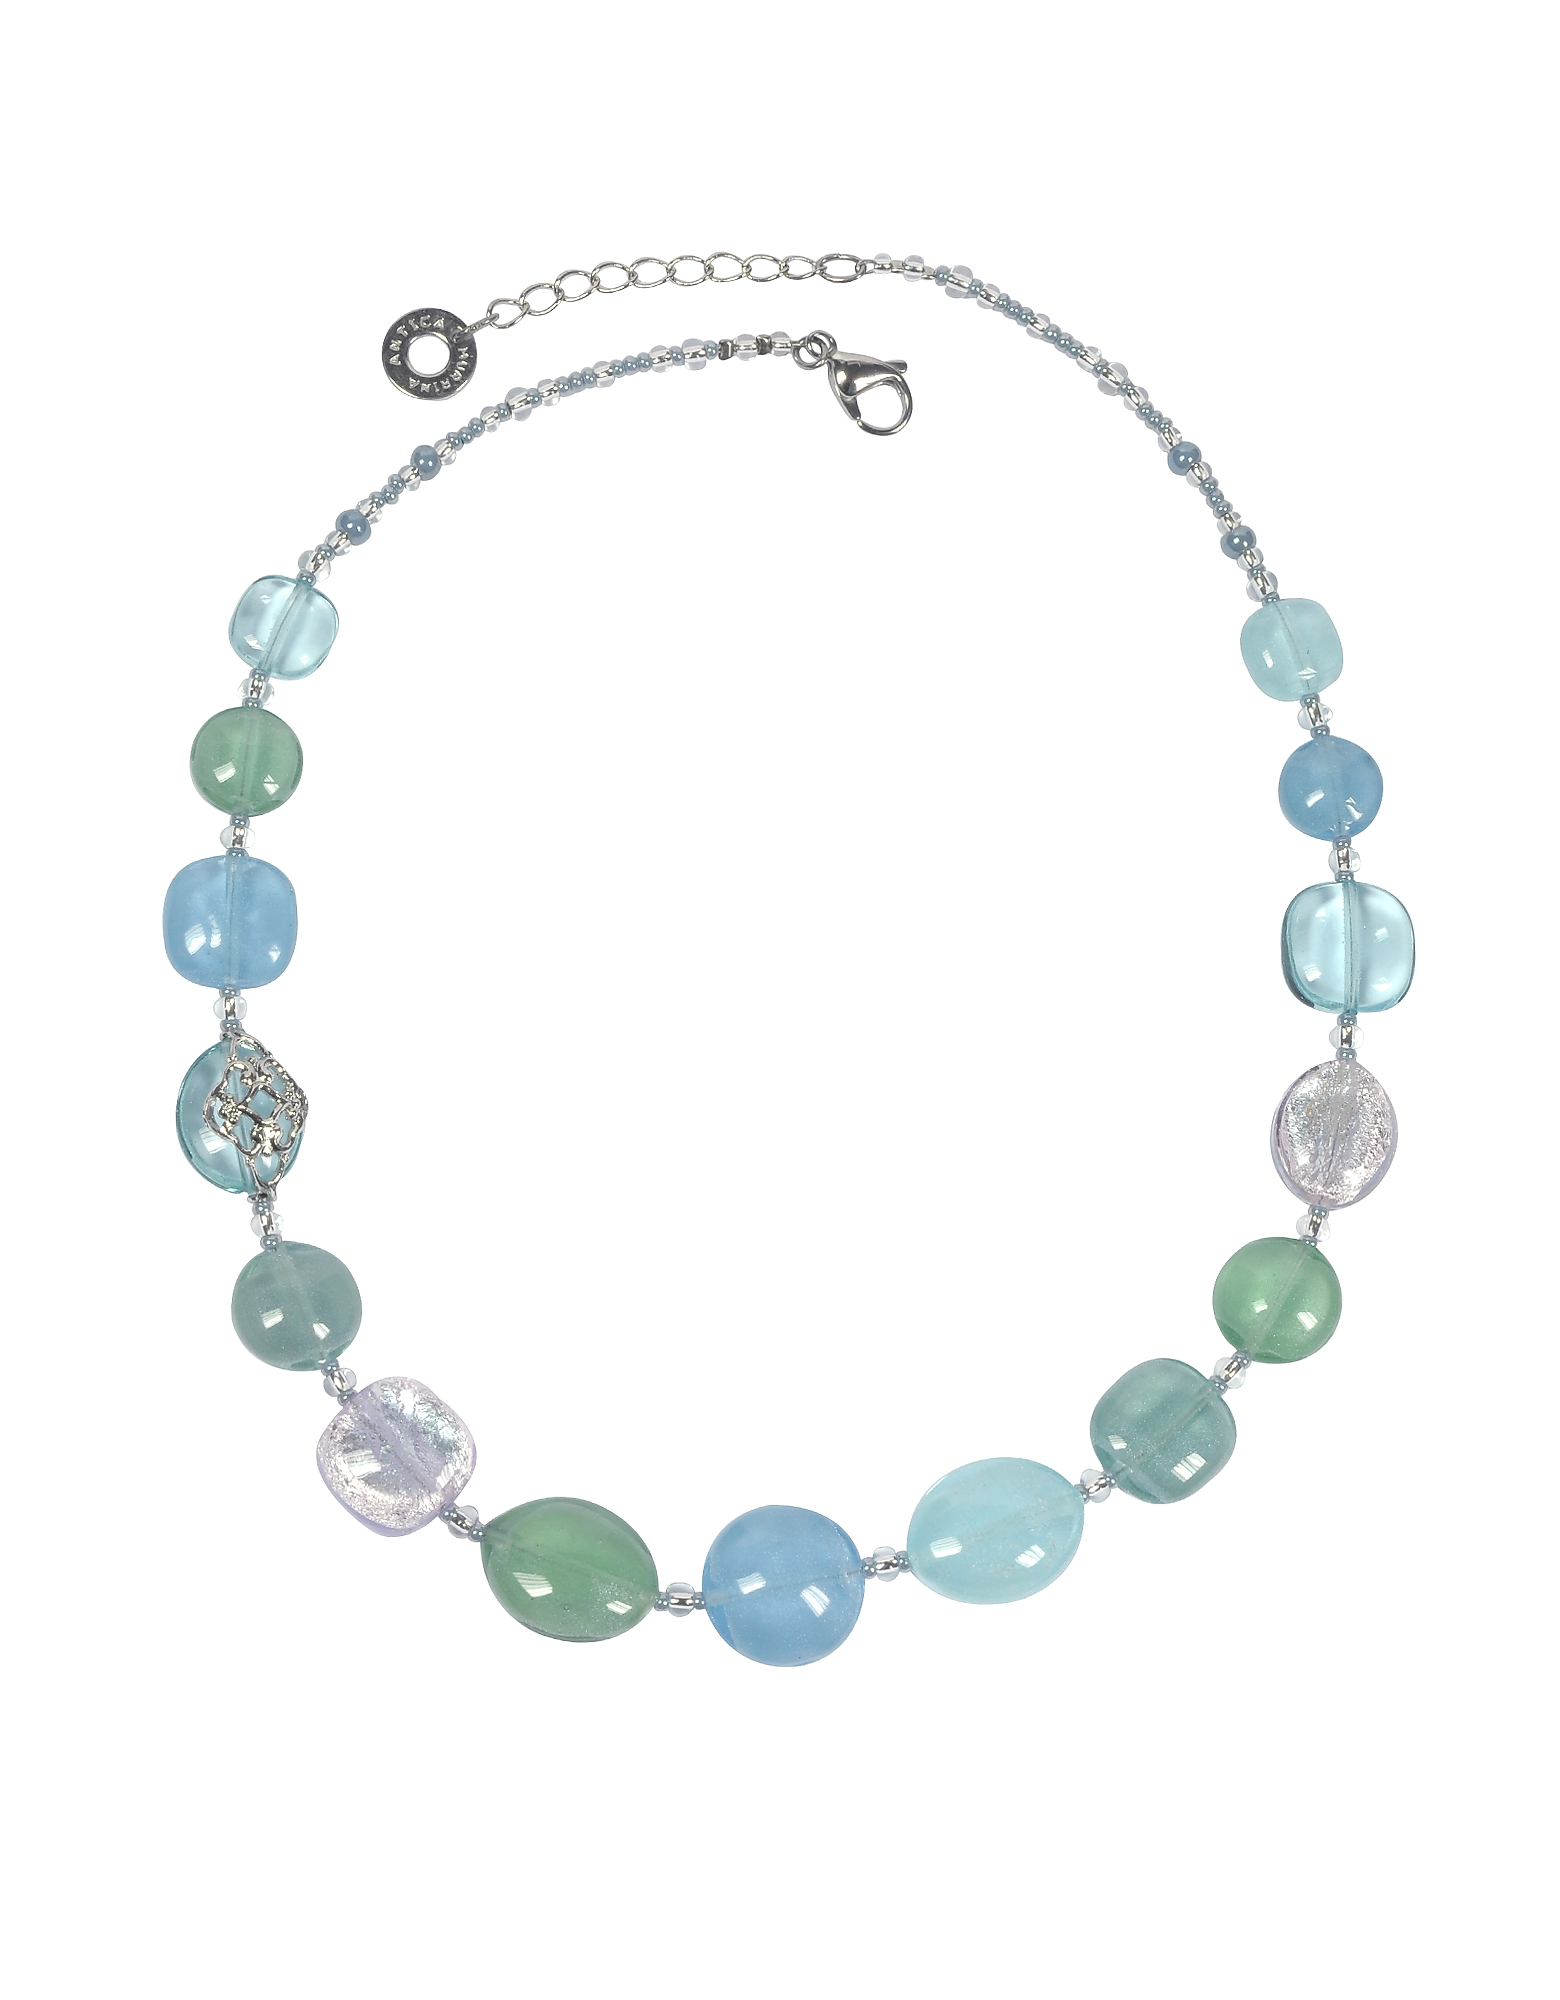 Antica Murrina Necklaces, Florinda Light Blue and Green Murano Glass Beads Necklace